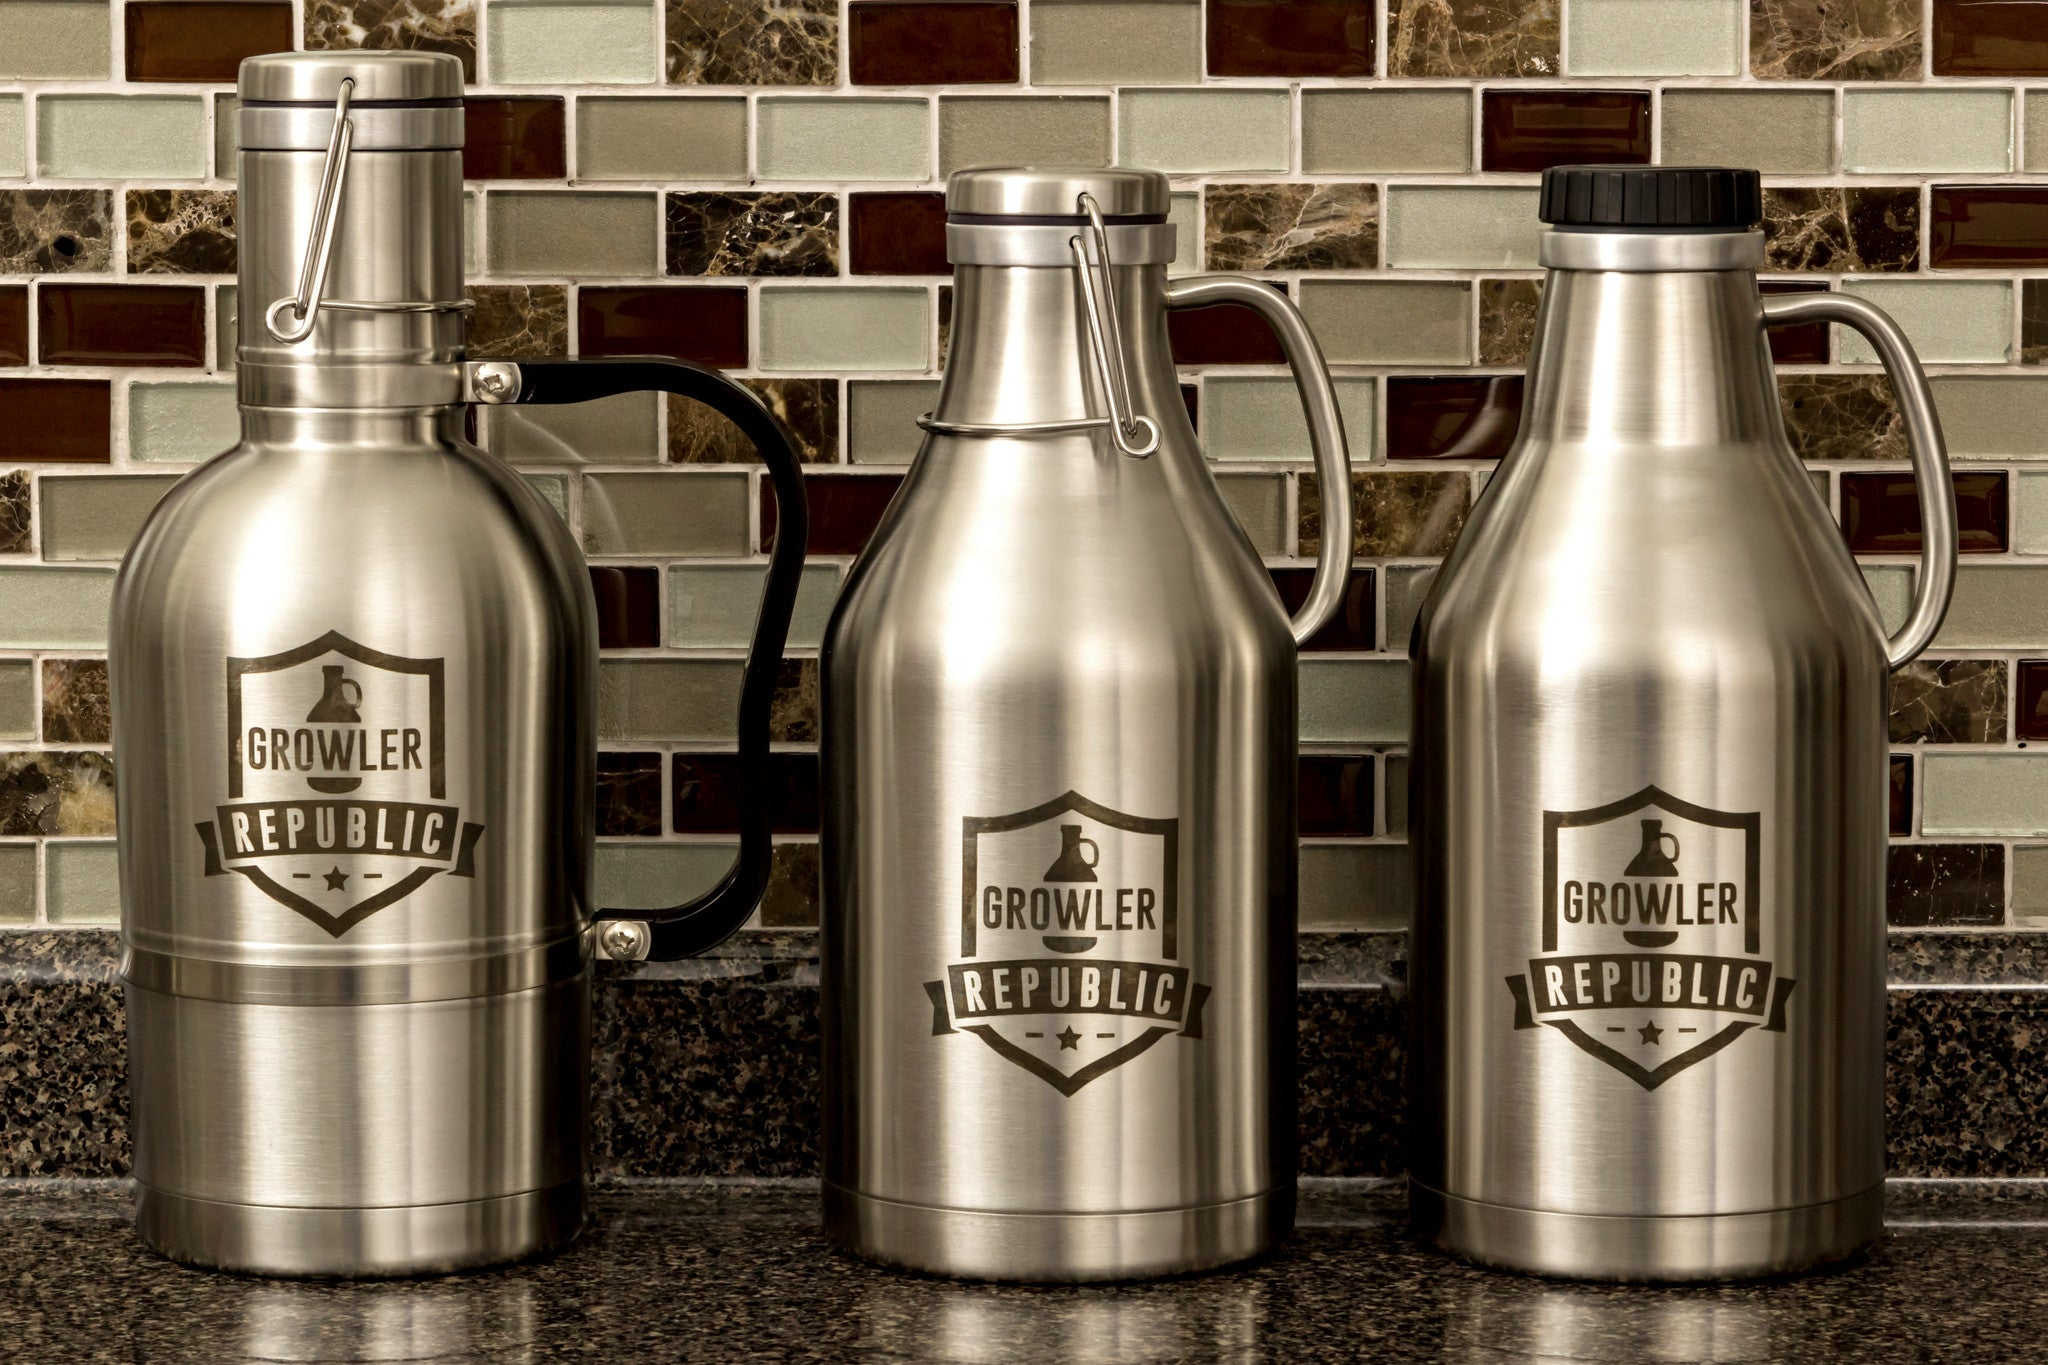 More growler styles coming soon!